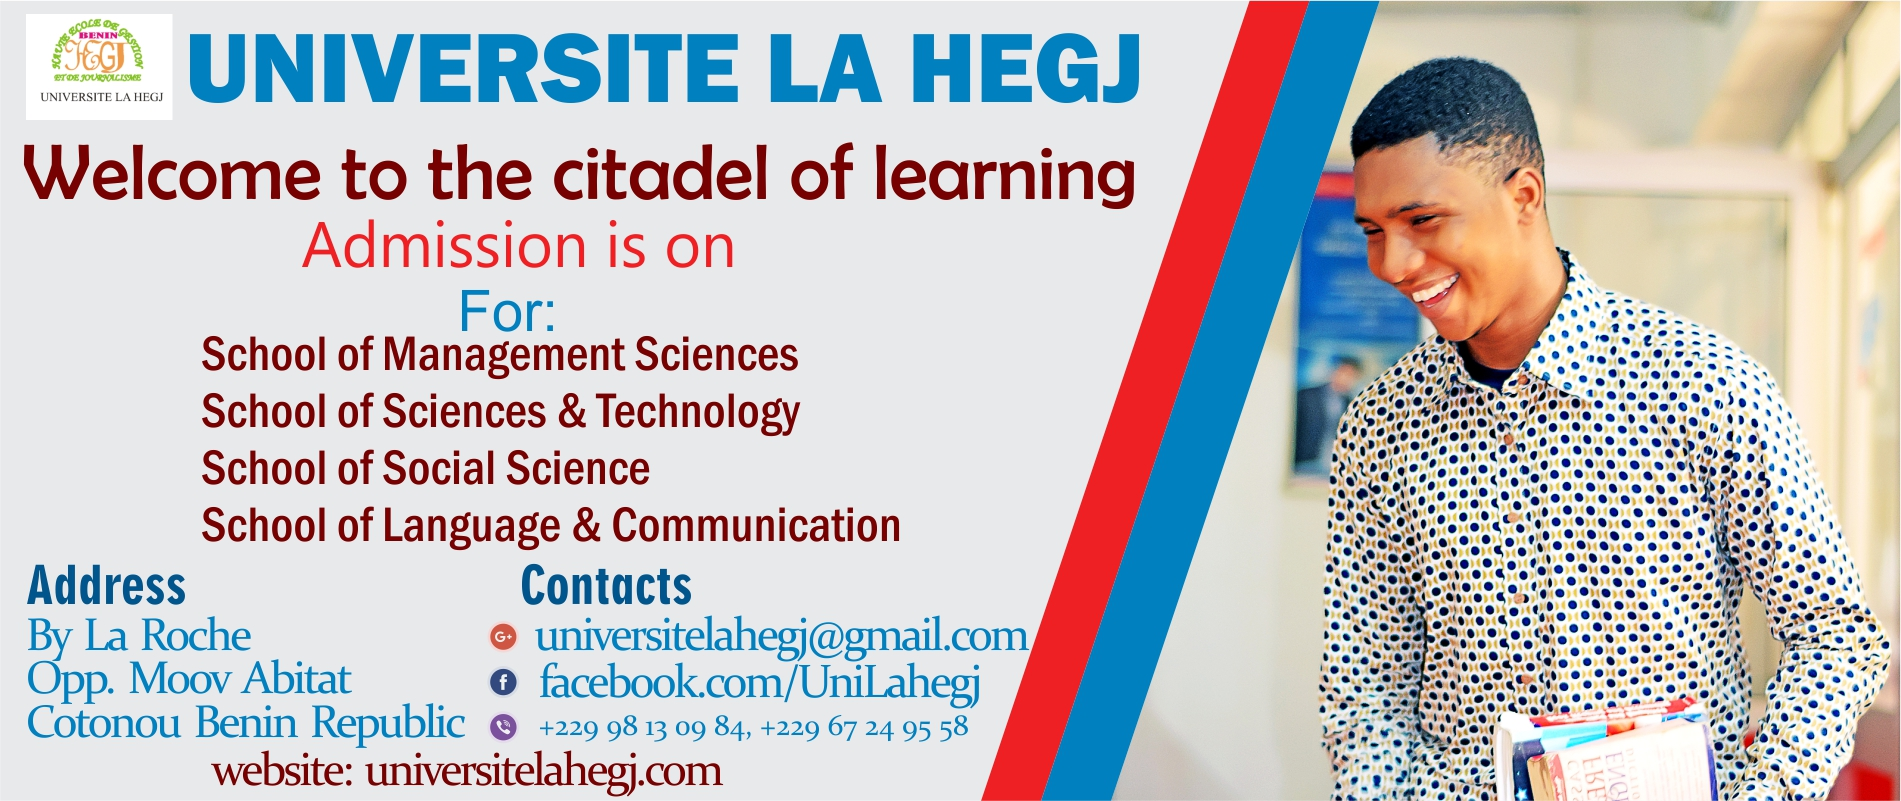 Universite la hegj cotonou benin republic